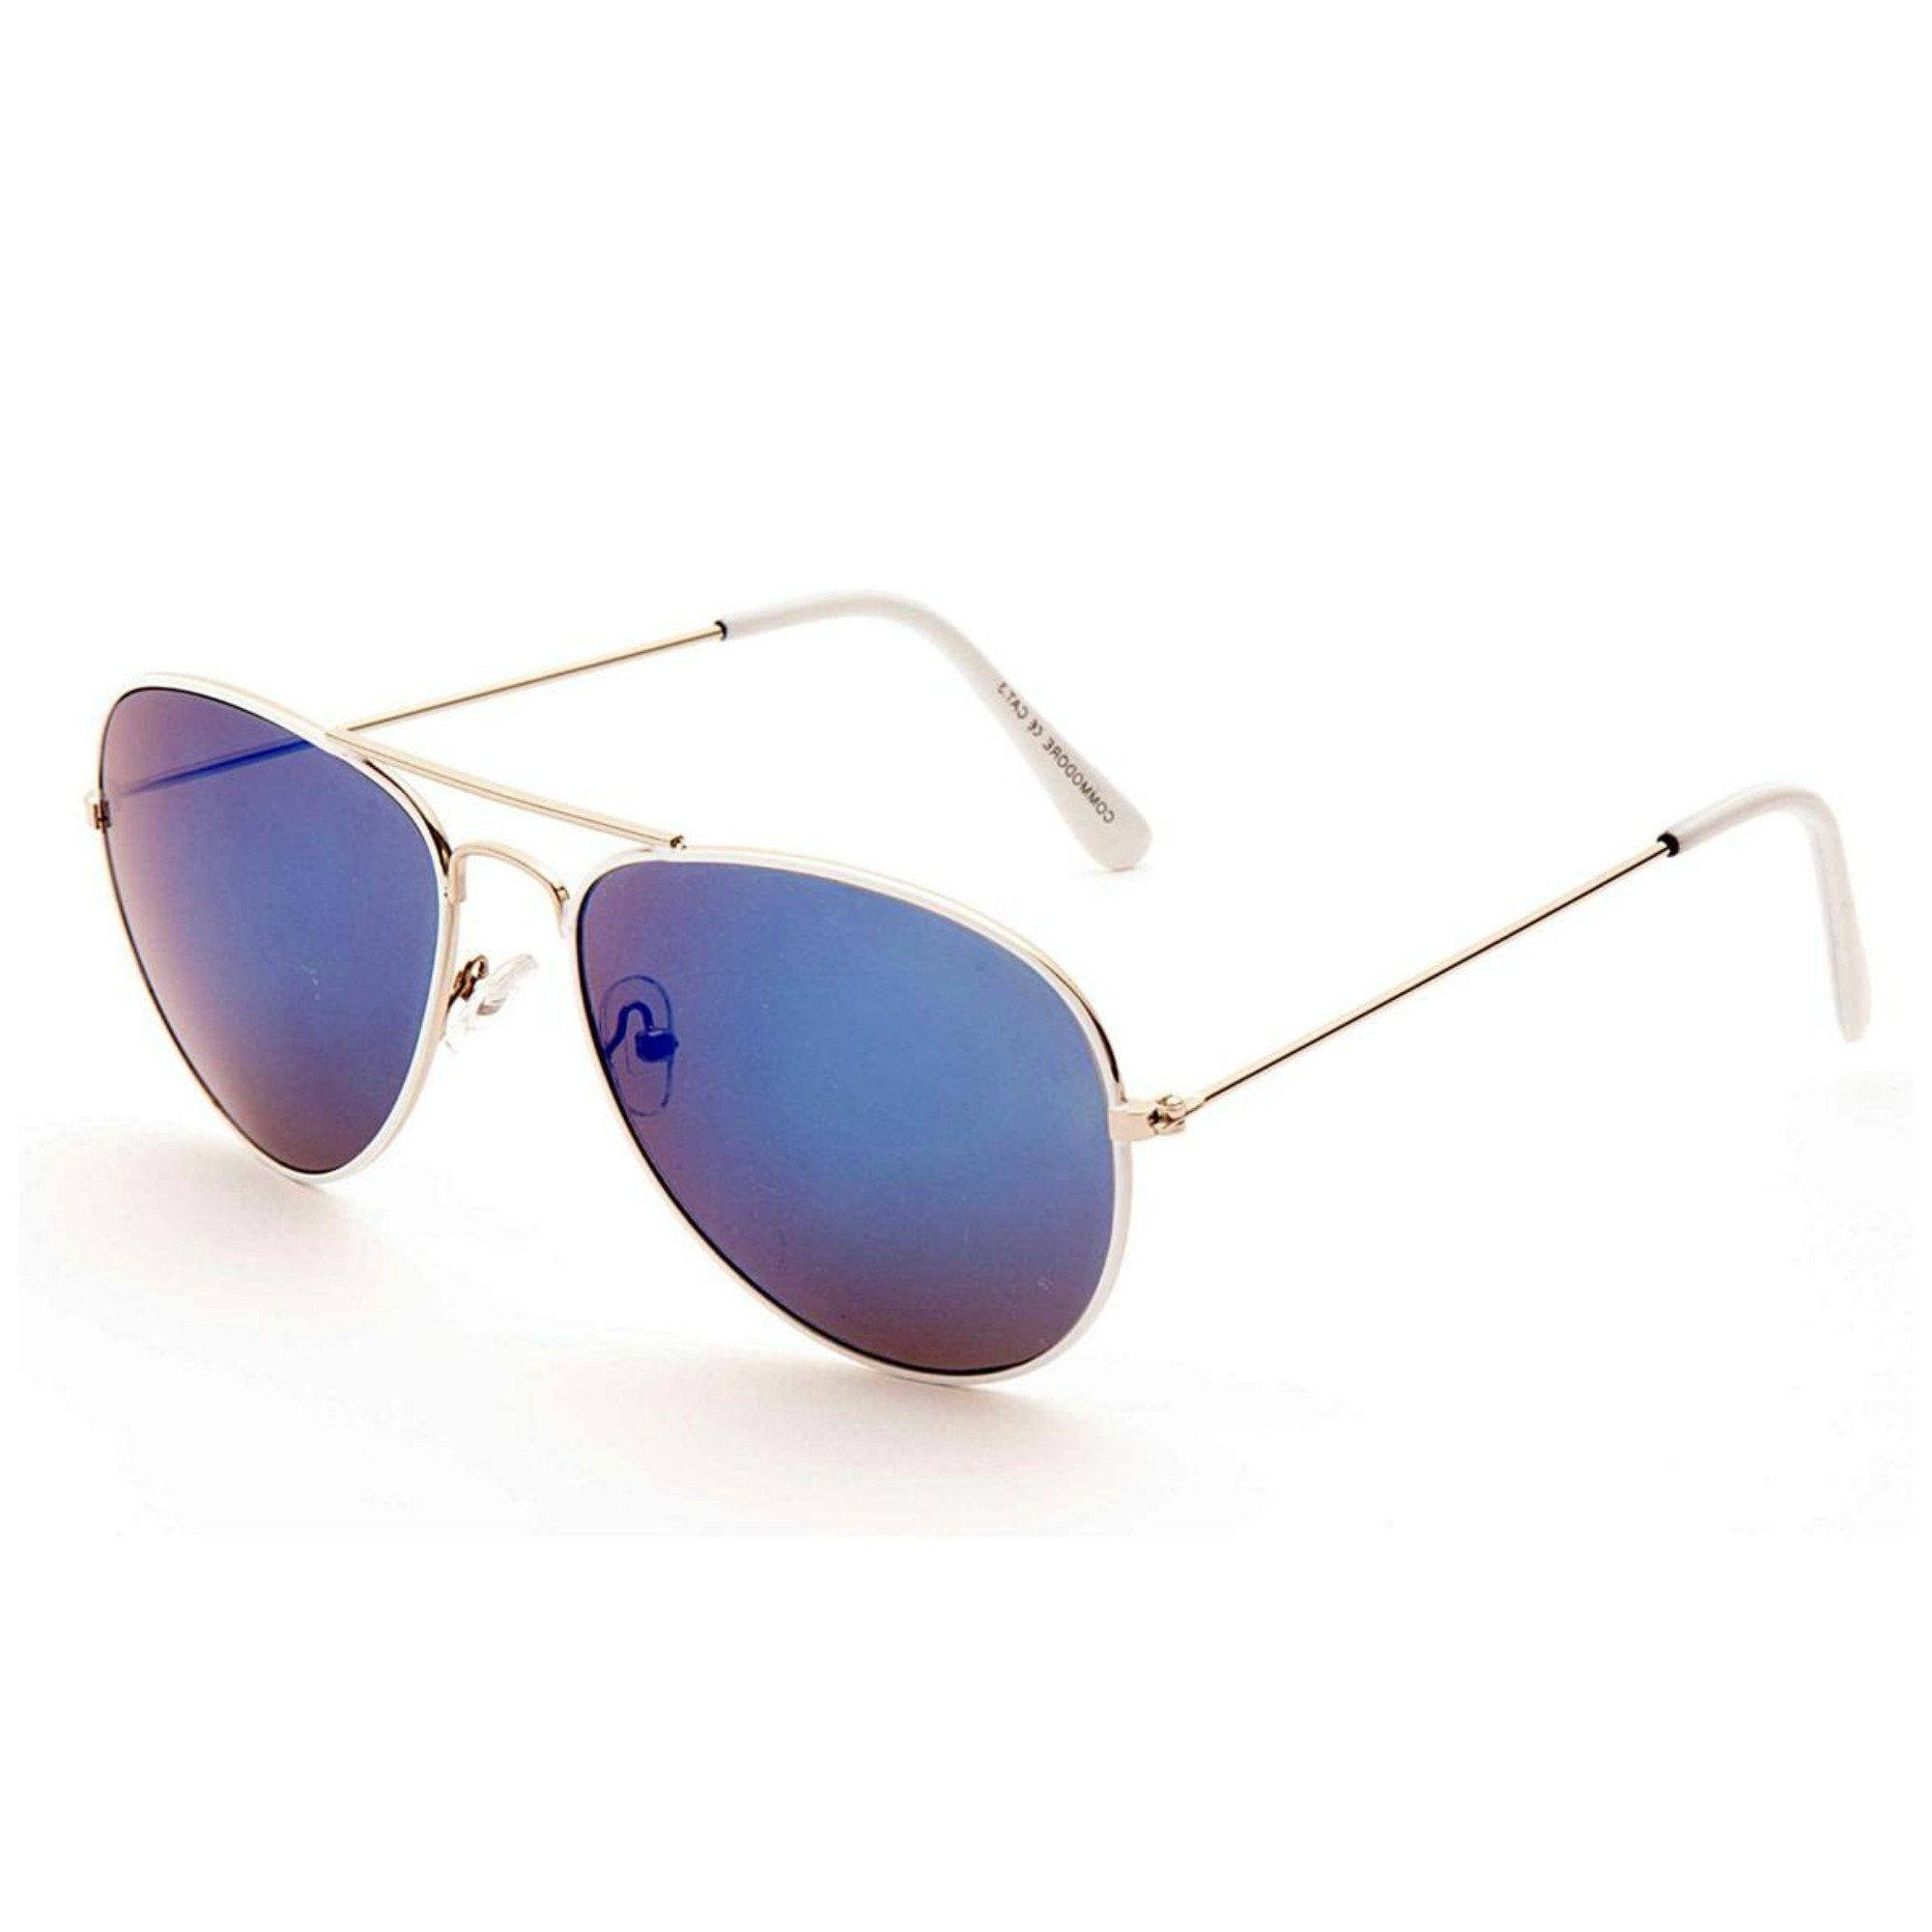 JETSTREAM Retro Mirrored Aviator Sunglasses - Minimum Mouse